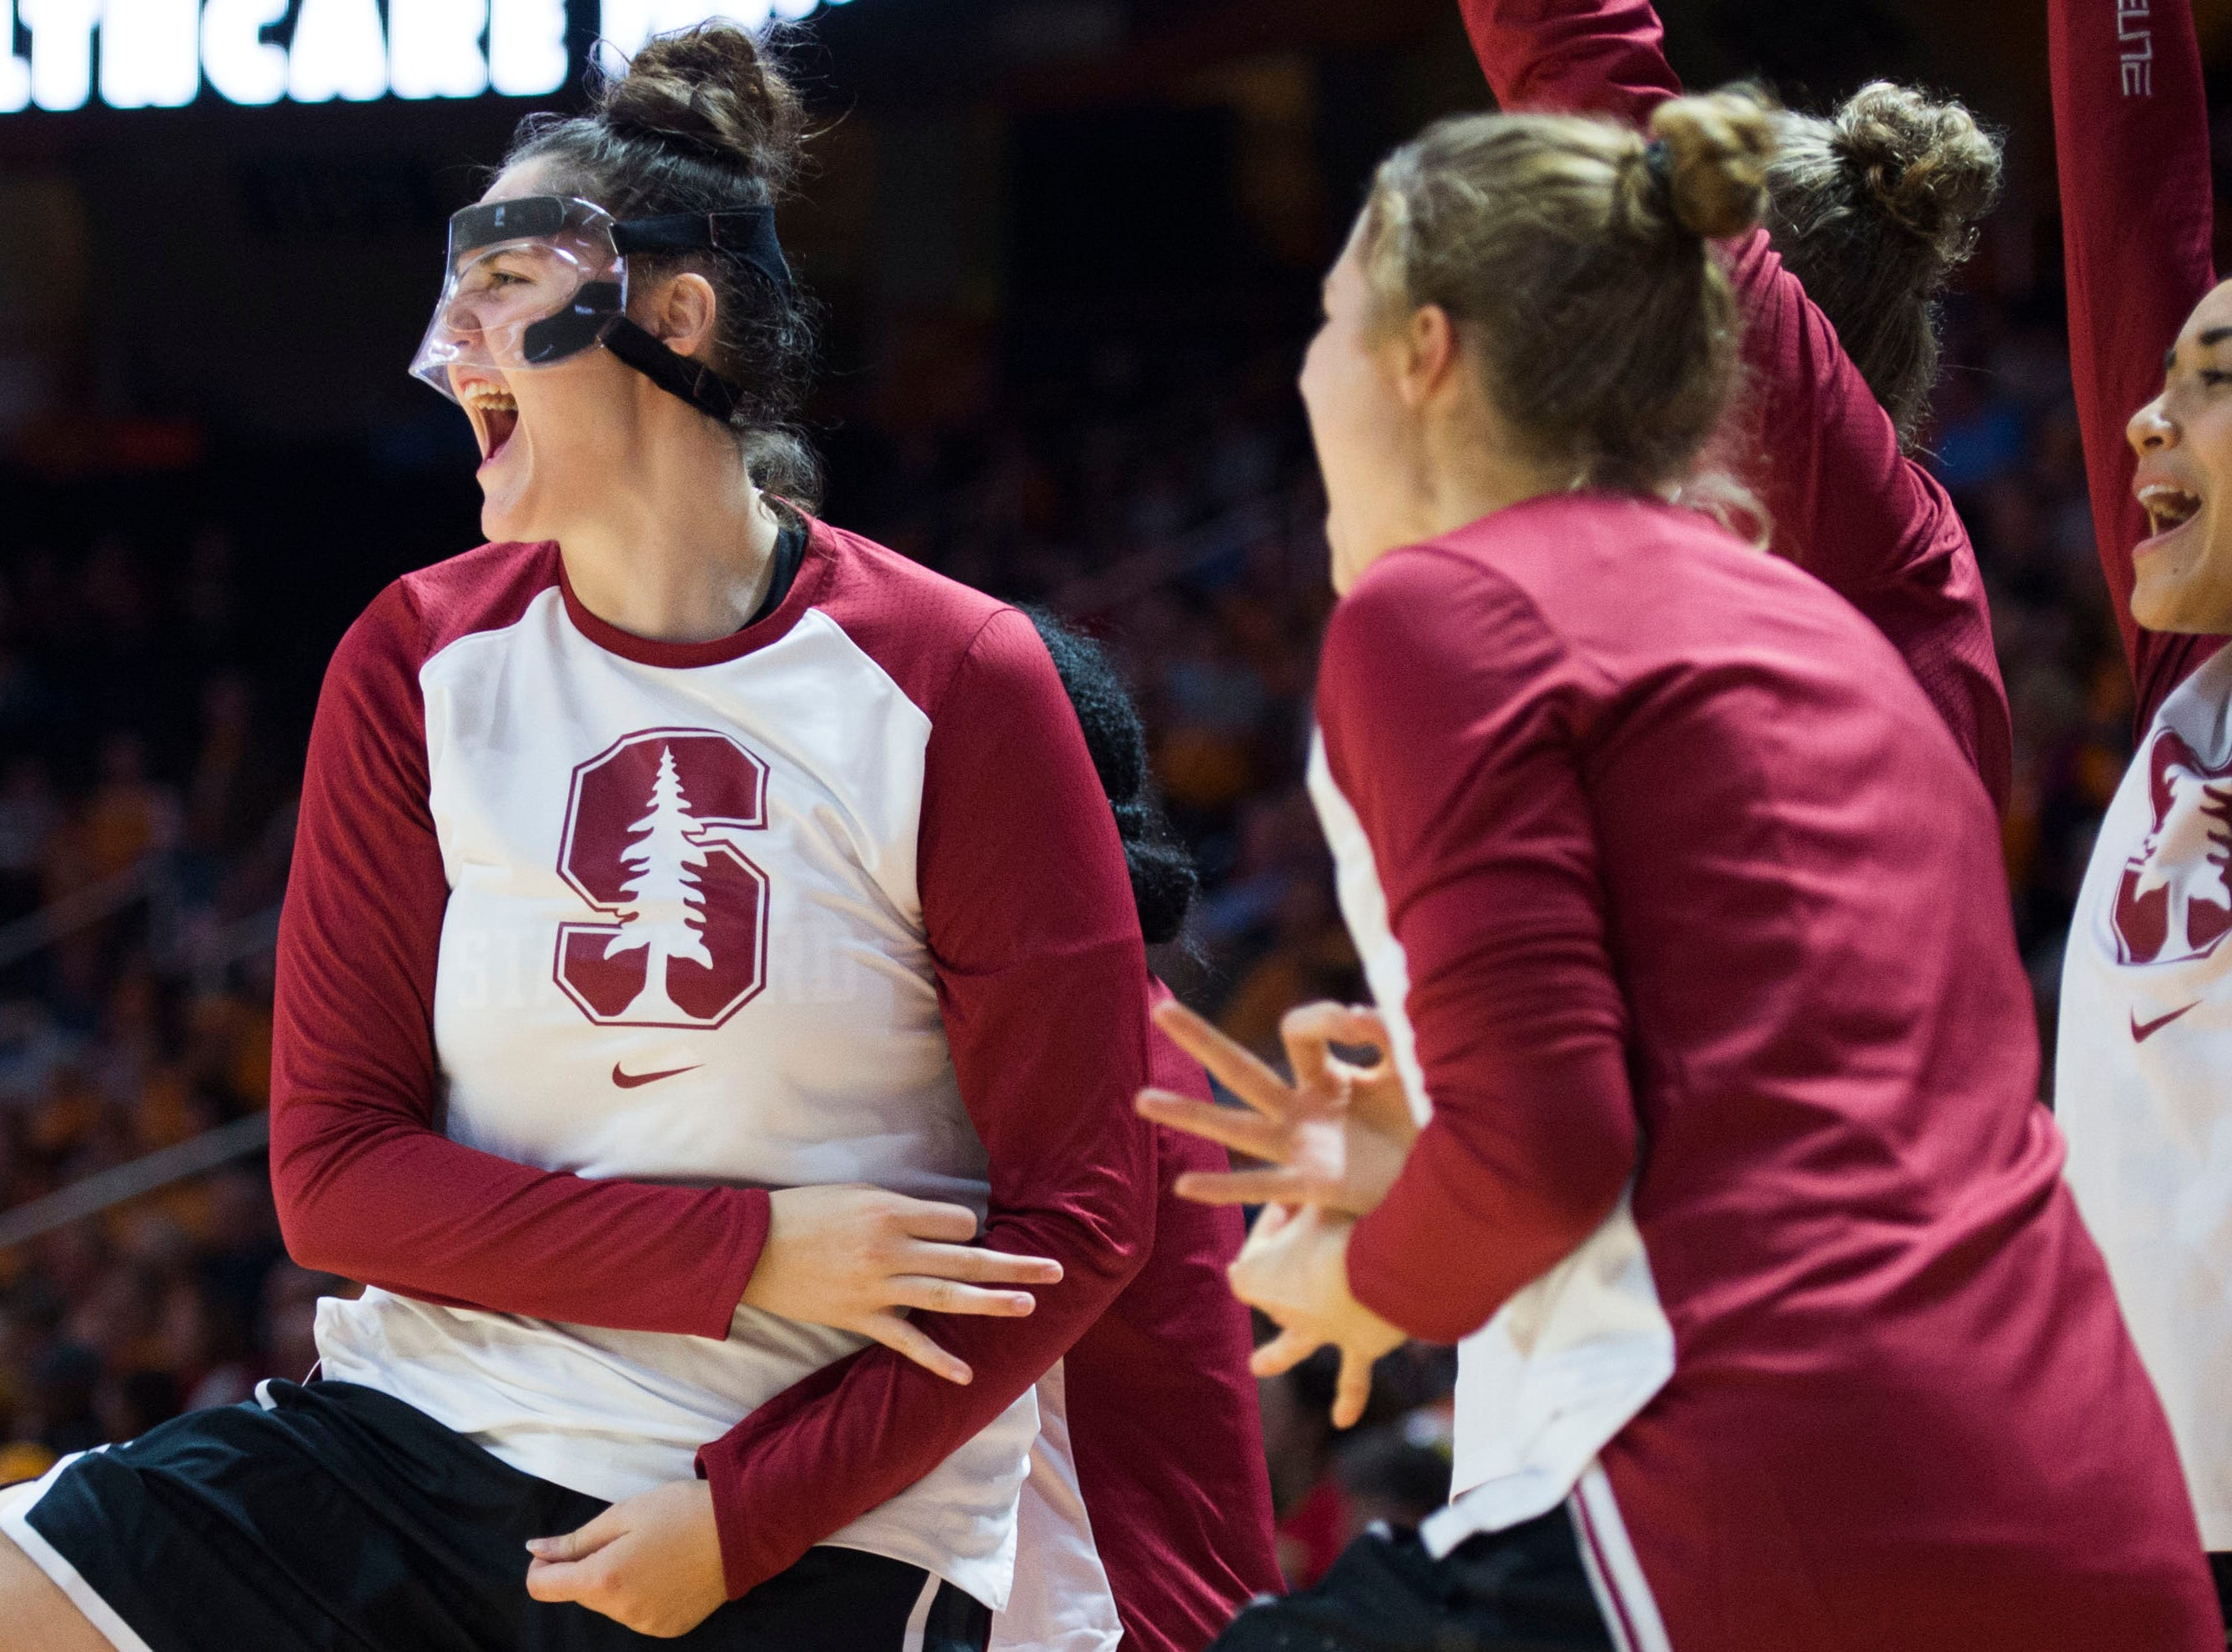 Stanford players react to a three-pointer during a women's basketball game between Tennessee and Stanford at Thompson-Boling Arena Tuesday, Dec. 18, 2018.